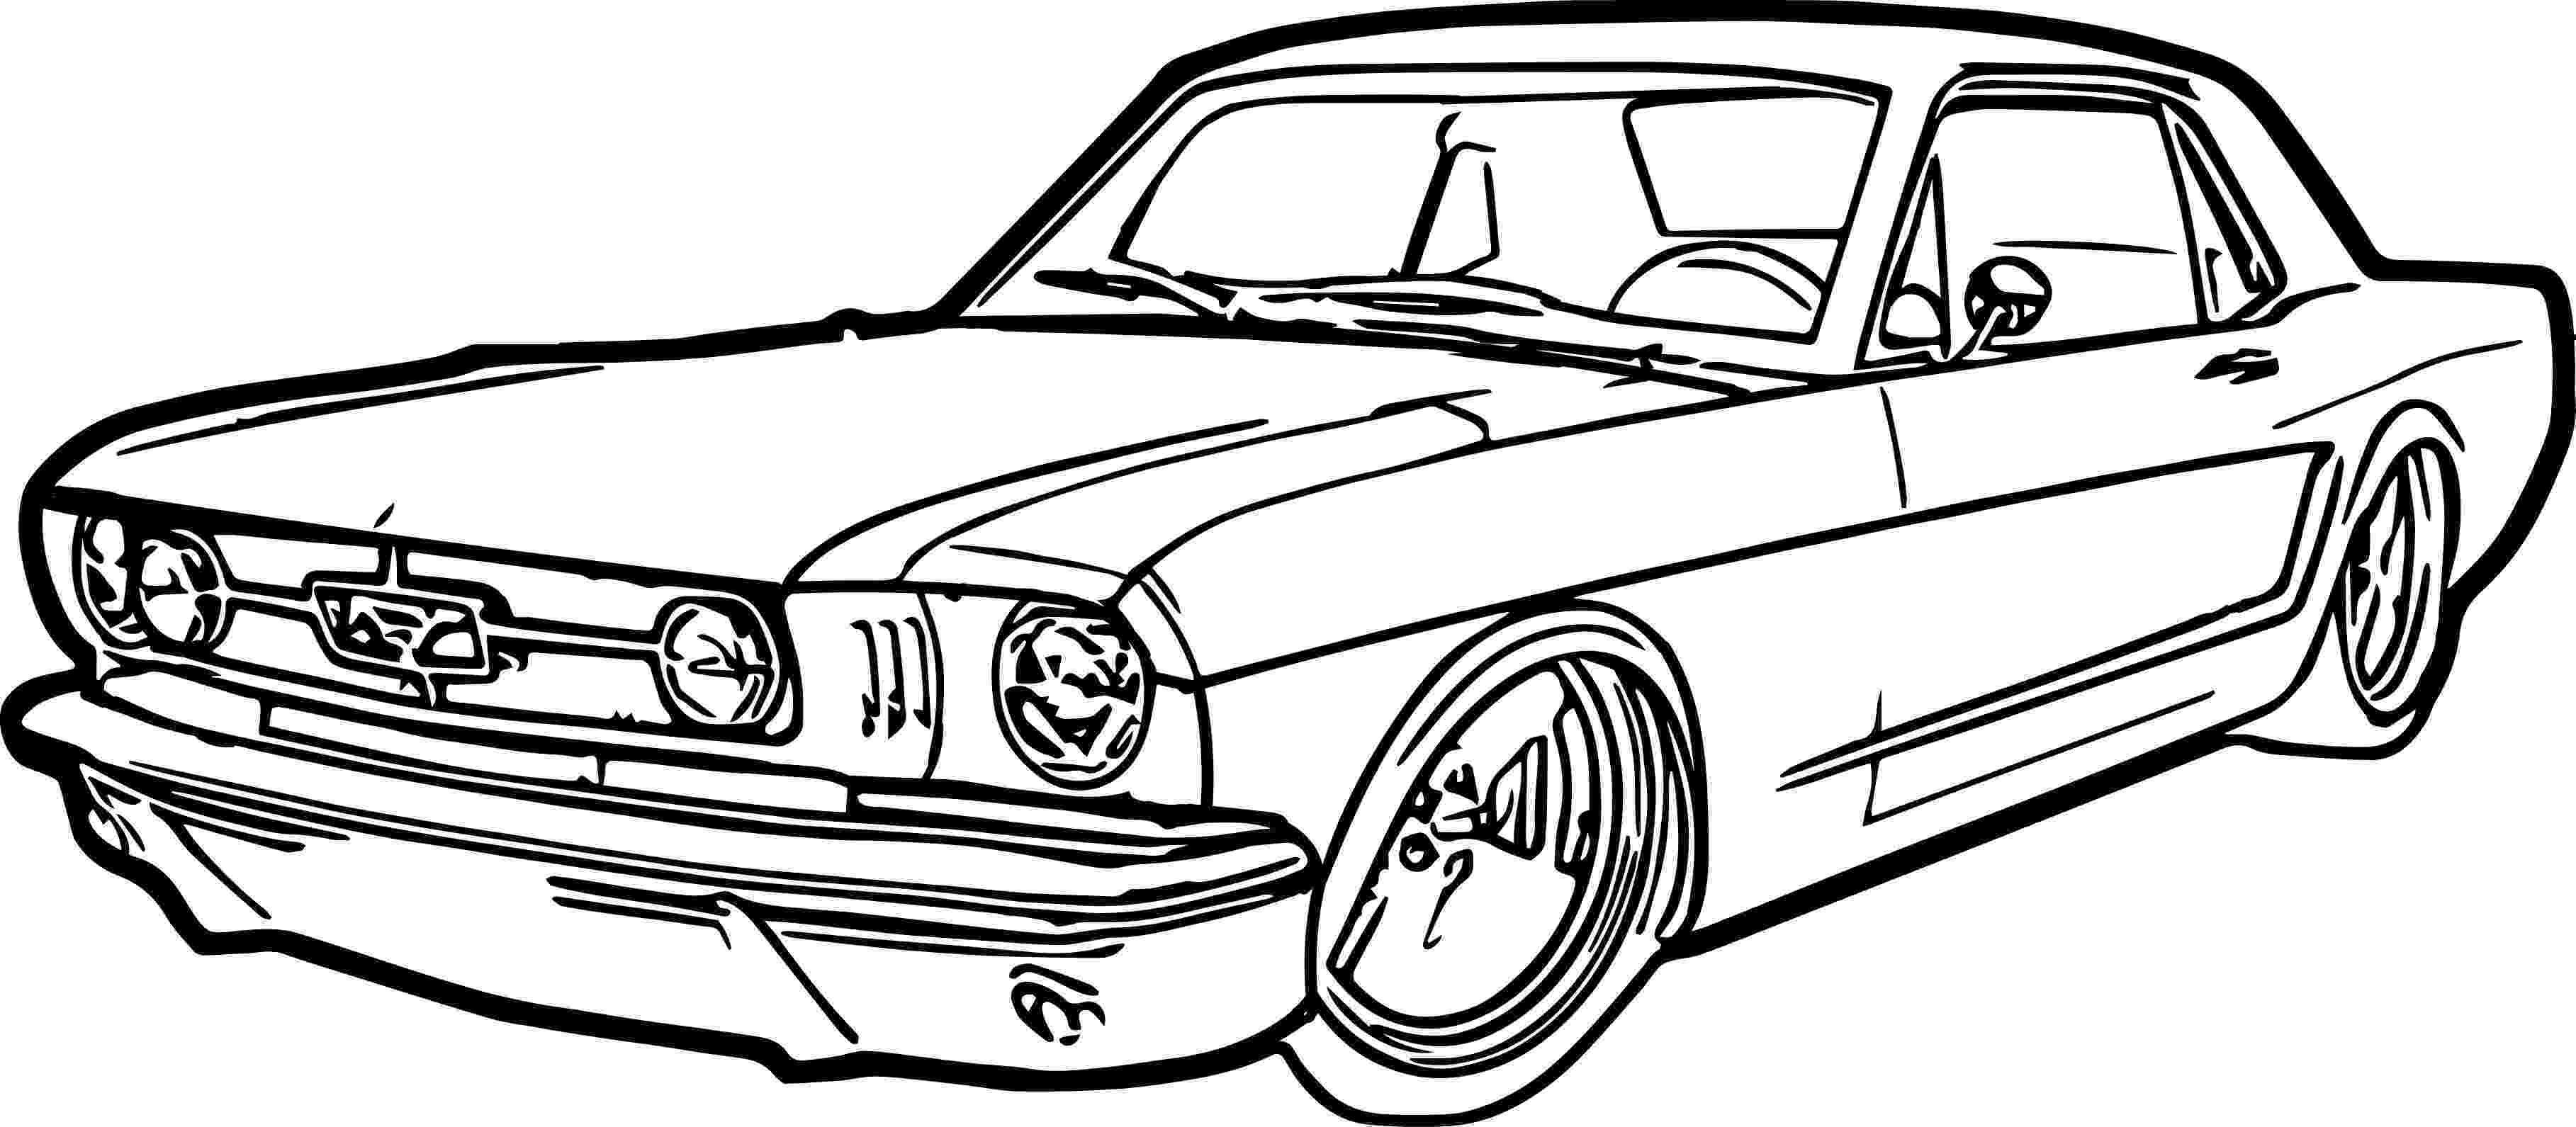 car colouring page download sports car coloring page colouring page car